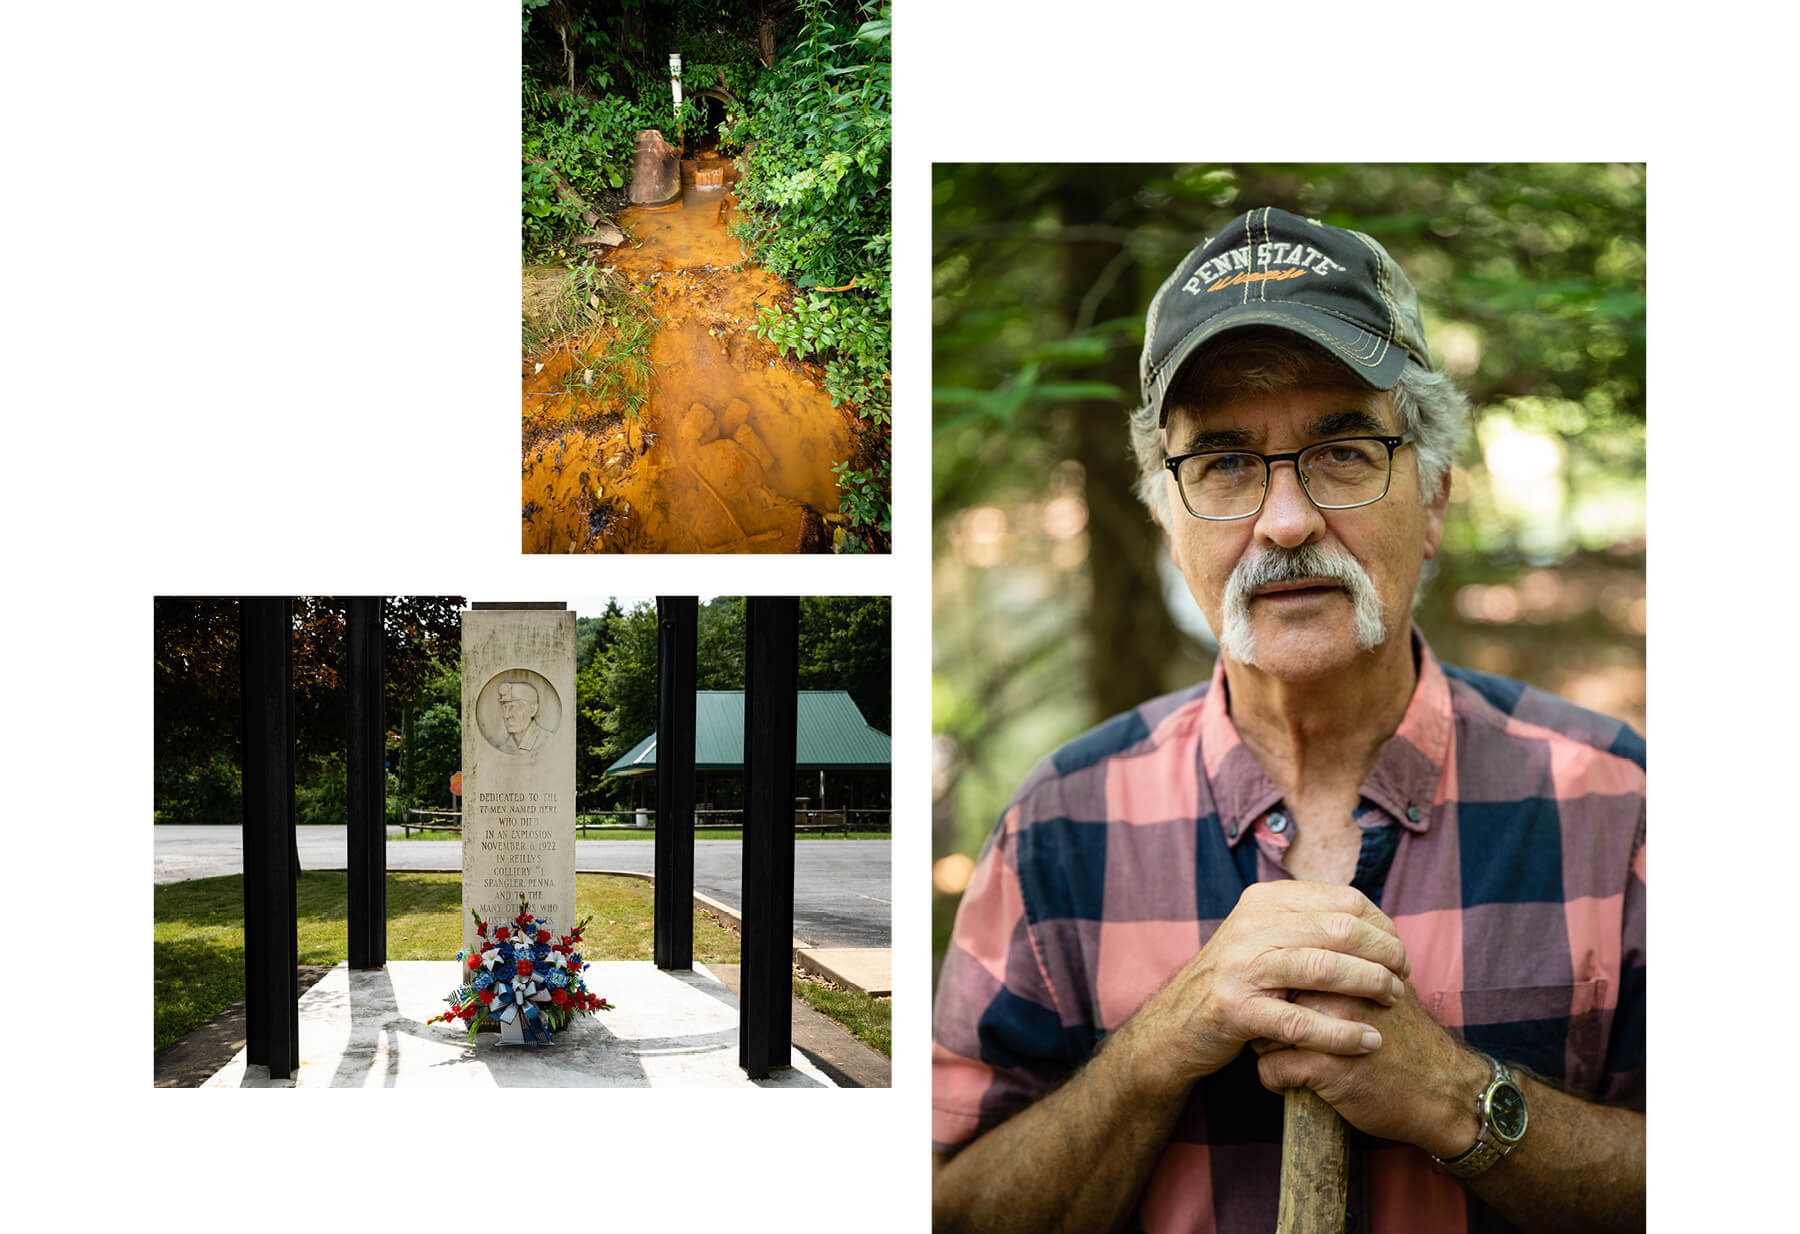 LEFT: A memorial in Patton, Pennsylvania dedicated to those who lost their lives during a AMD treatment plant accident. TOP: An AMD outfall in the headwaters of the West Branch.  RIGHT: Local historian and angler Jack Bartock has seen the West Branch improve over the decades. (Photo by Ethan Weston/Chesapeake Bay Program)